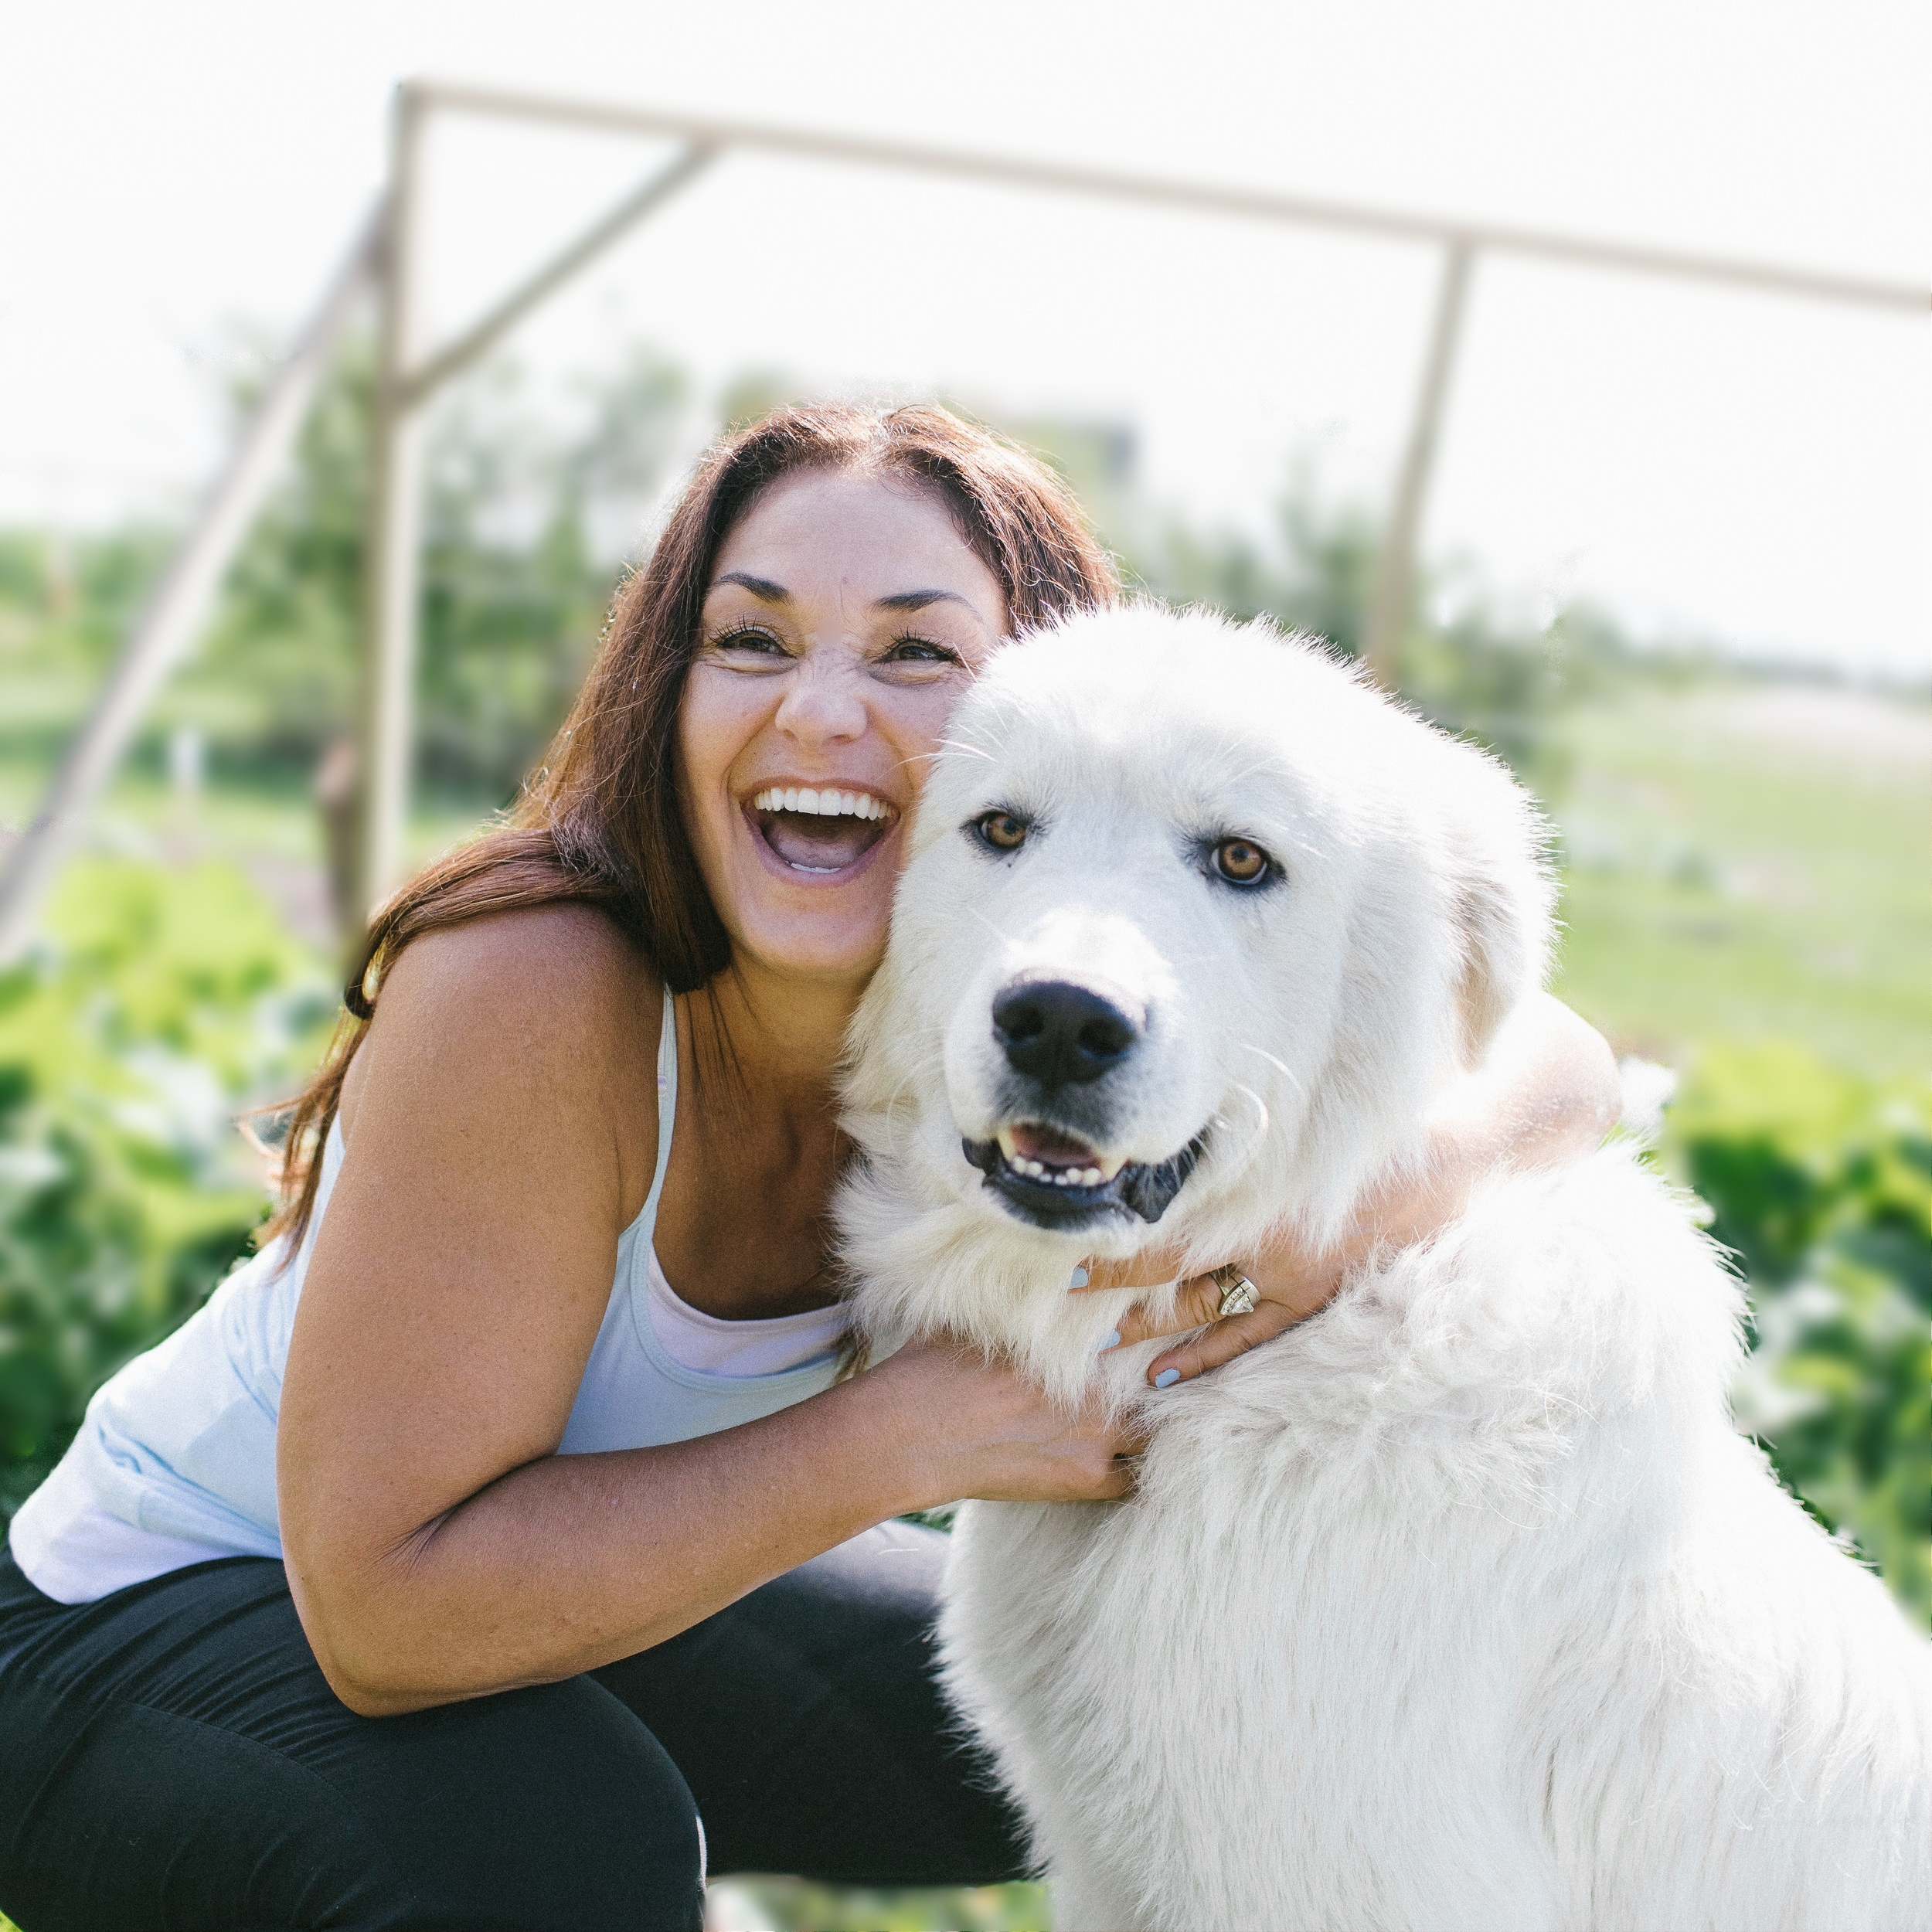 Hi there! - I'm Della, I live in the country, love elephants, writing, big white dogs, picking flowers, travel & spending time with my family.I also love yoga pants, ripple chips and working from home with cats on my lap.And, I have a passion for chakras which I turned into a booming business - how great is that?